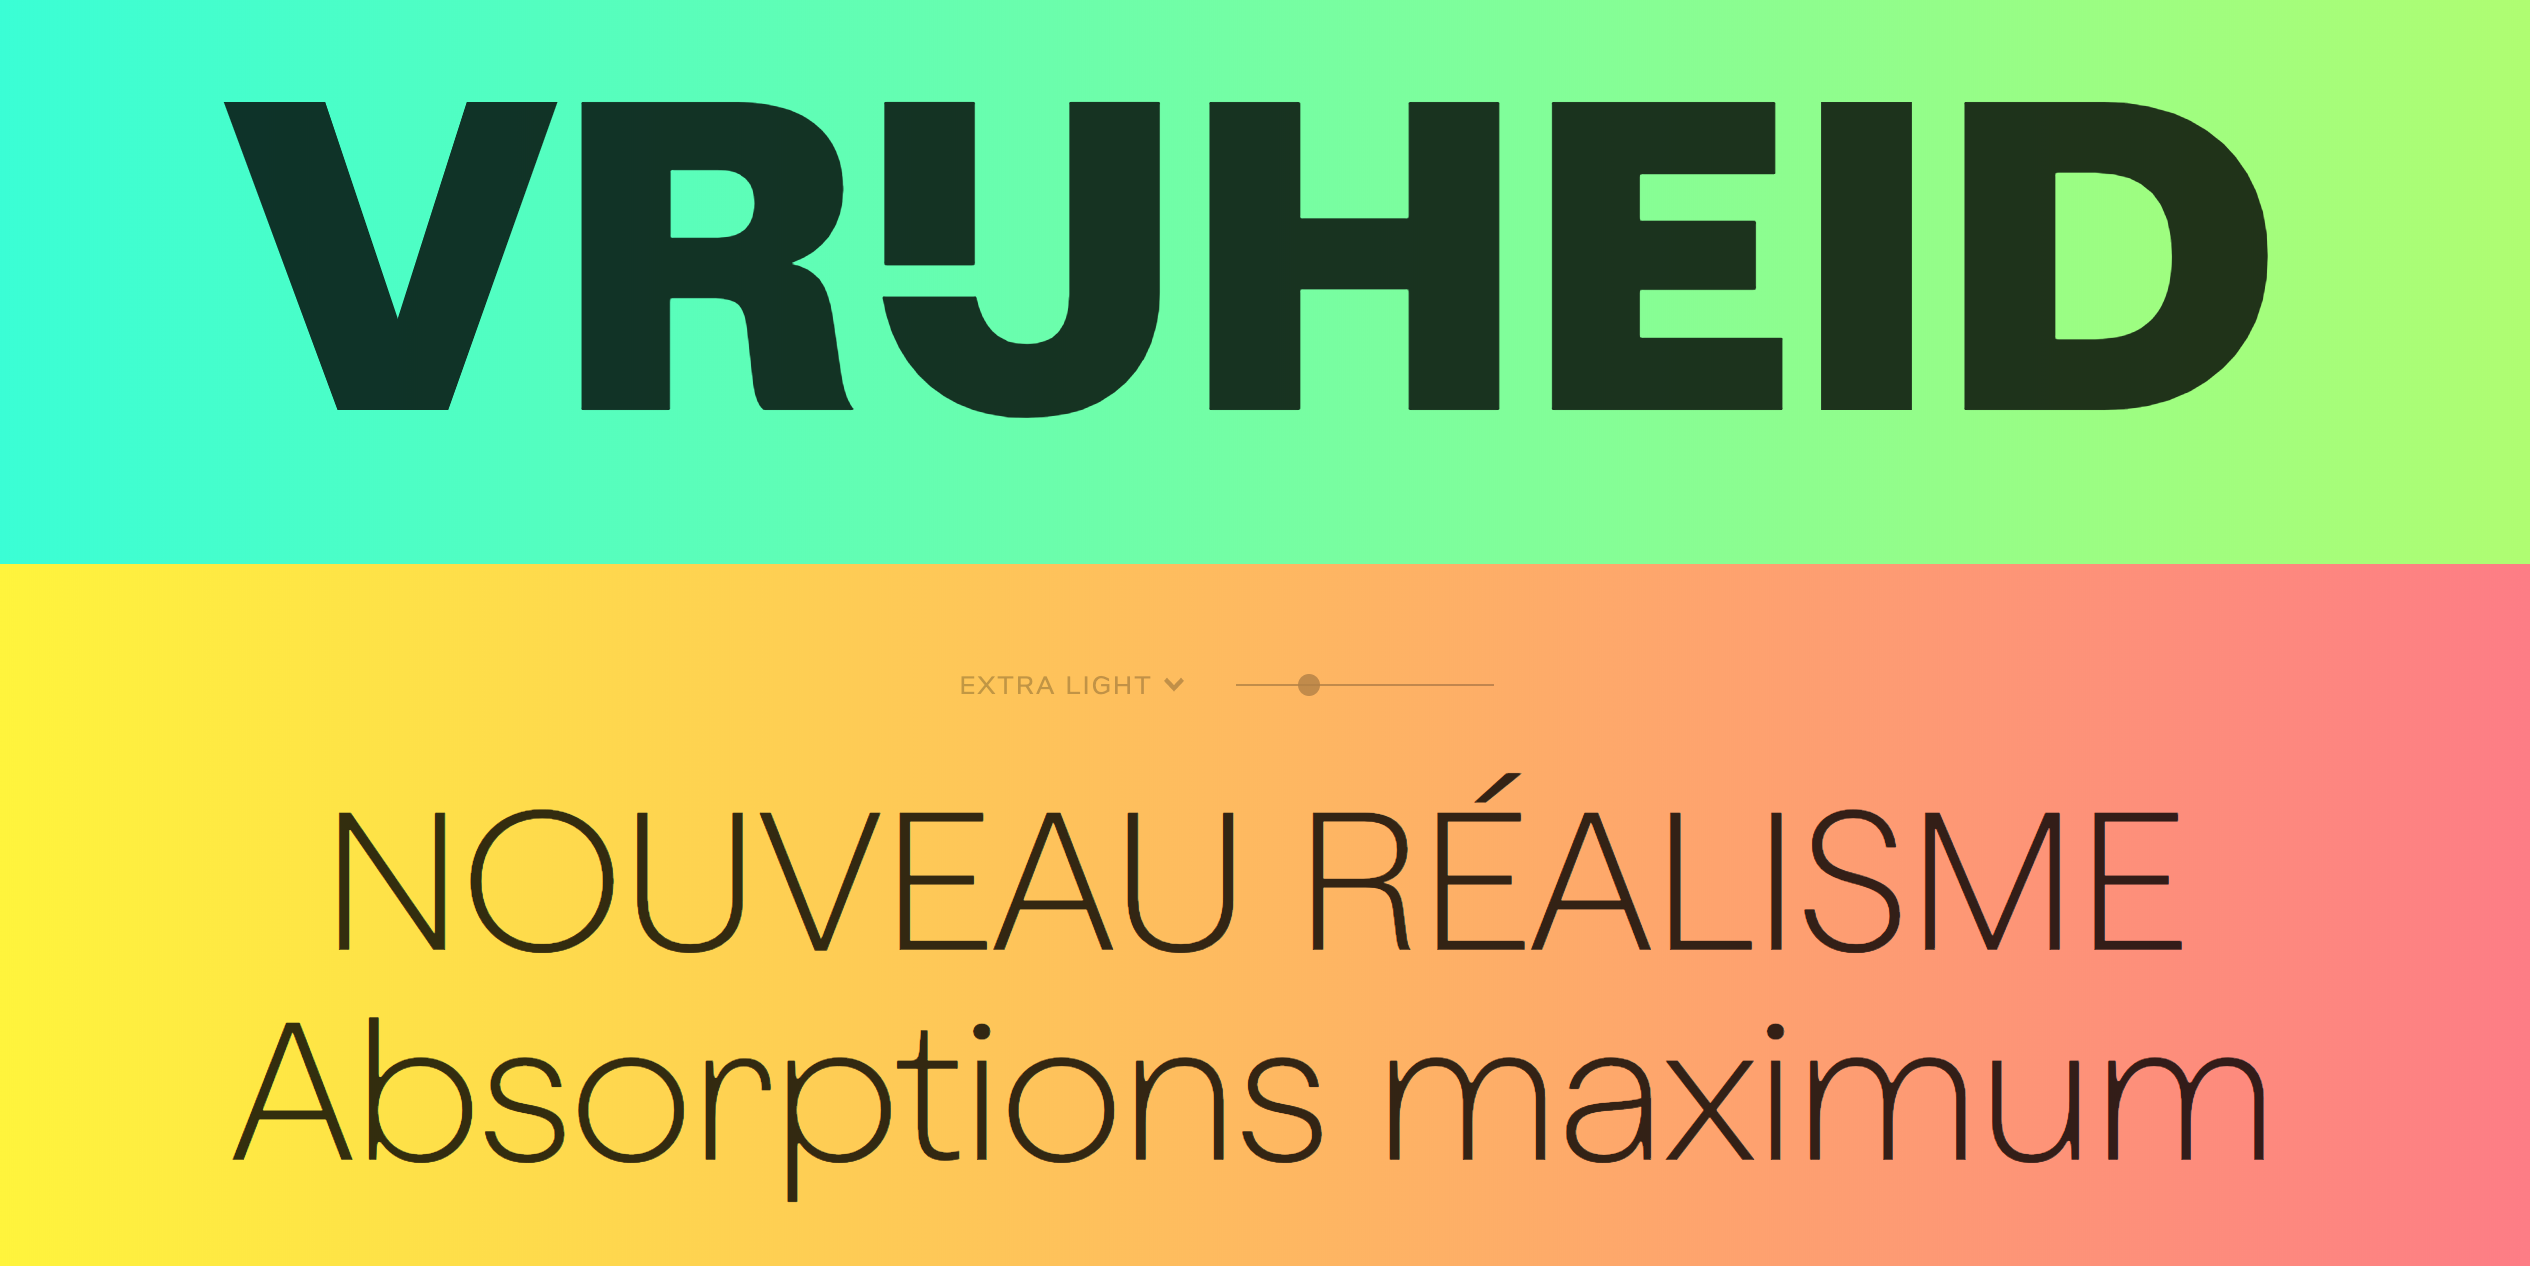 Kilotype now offers student licenses for €60 per font family